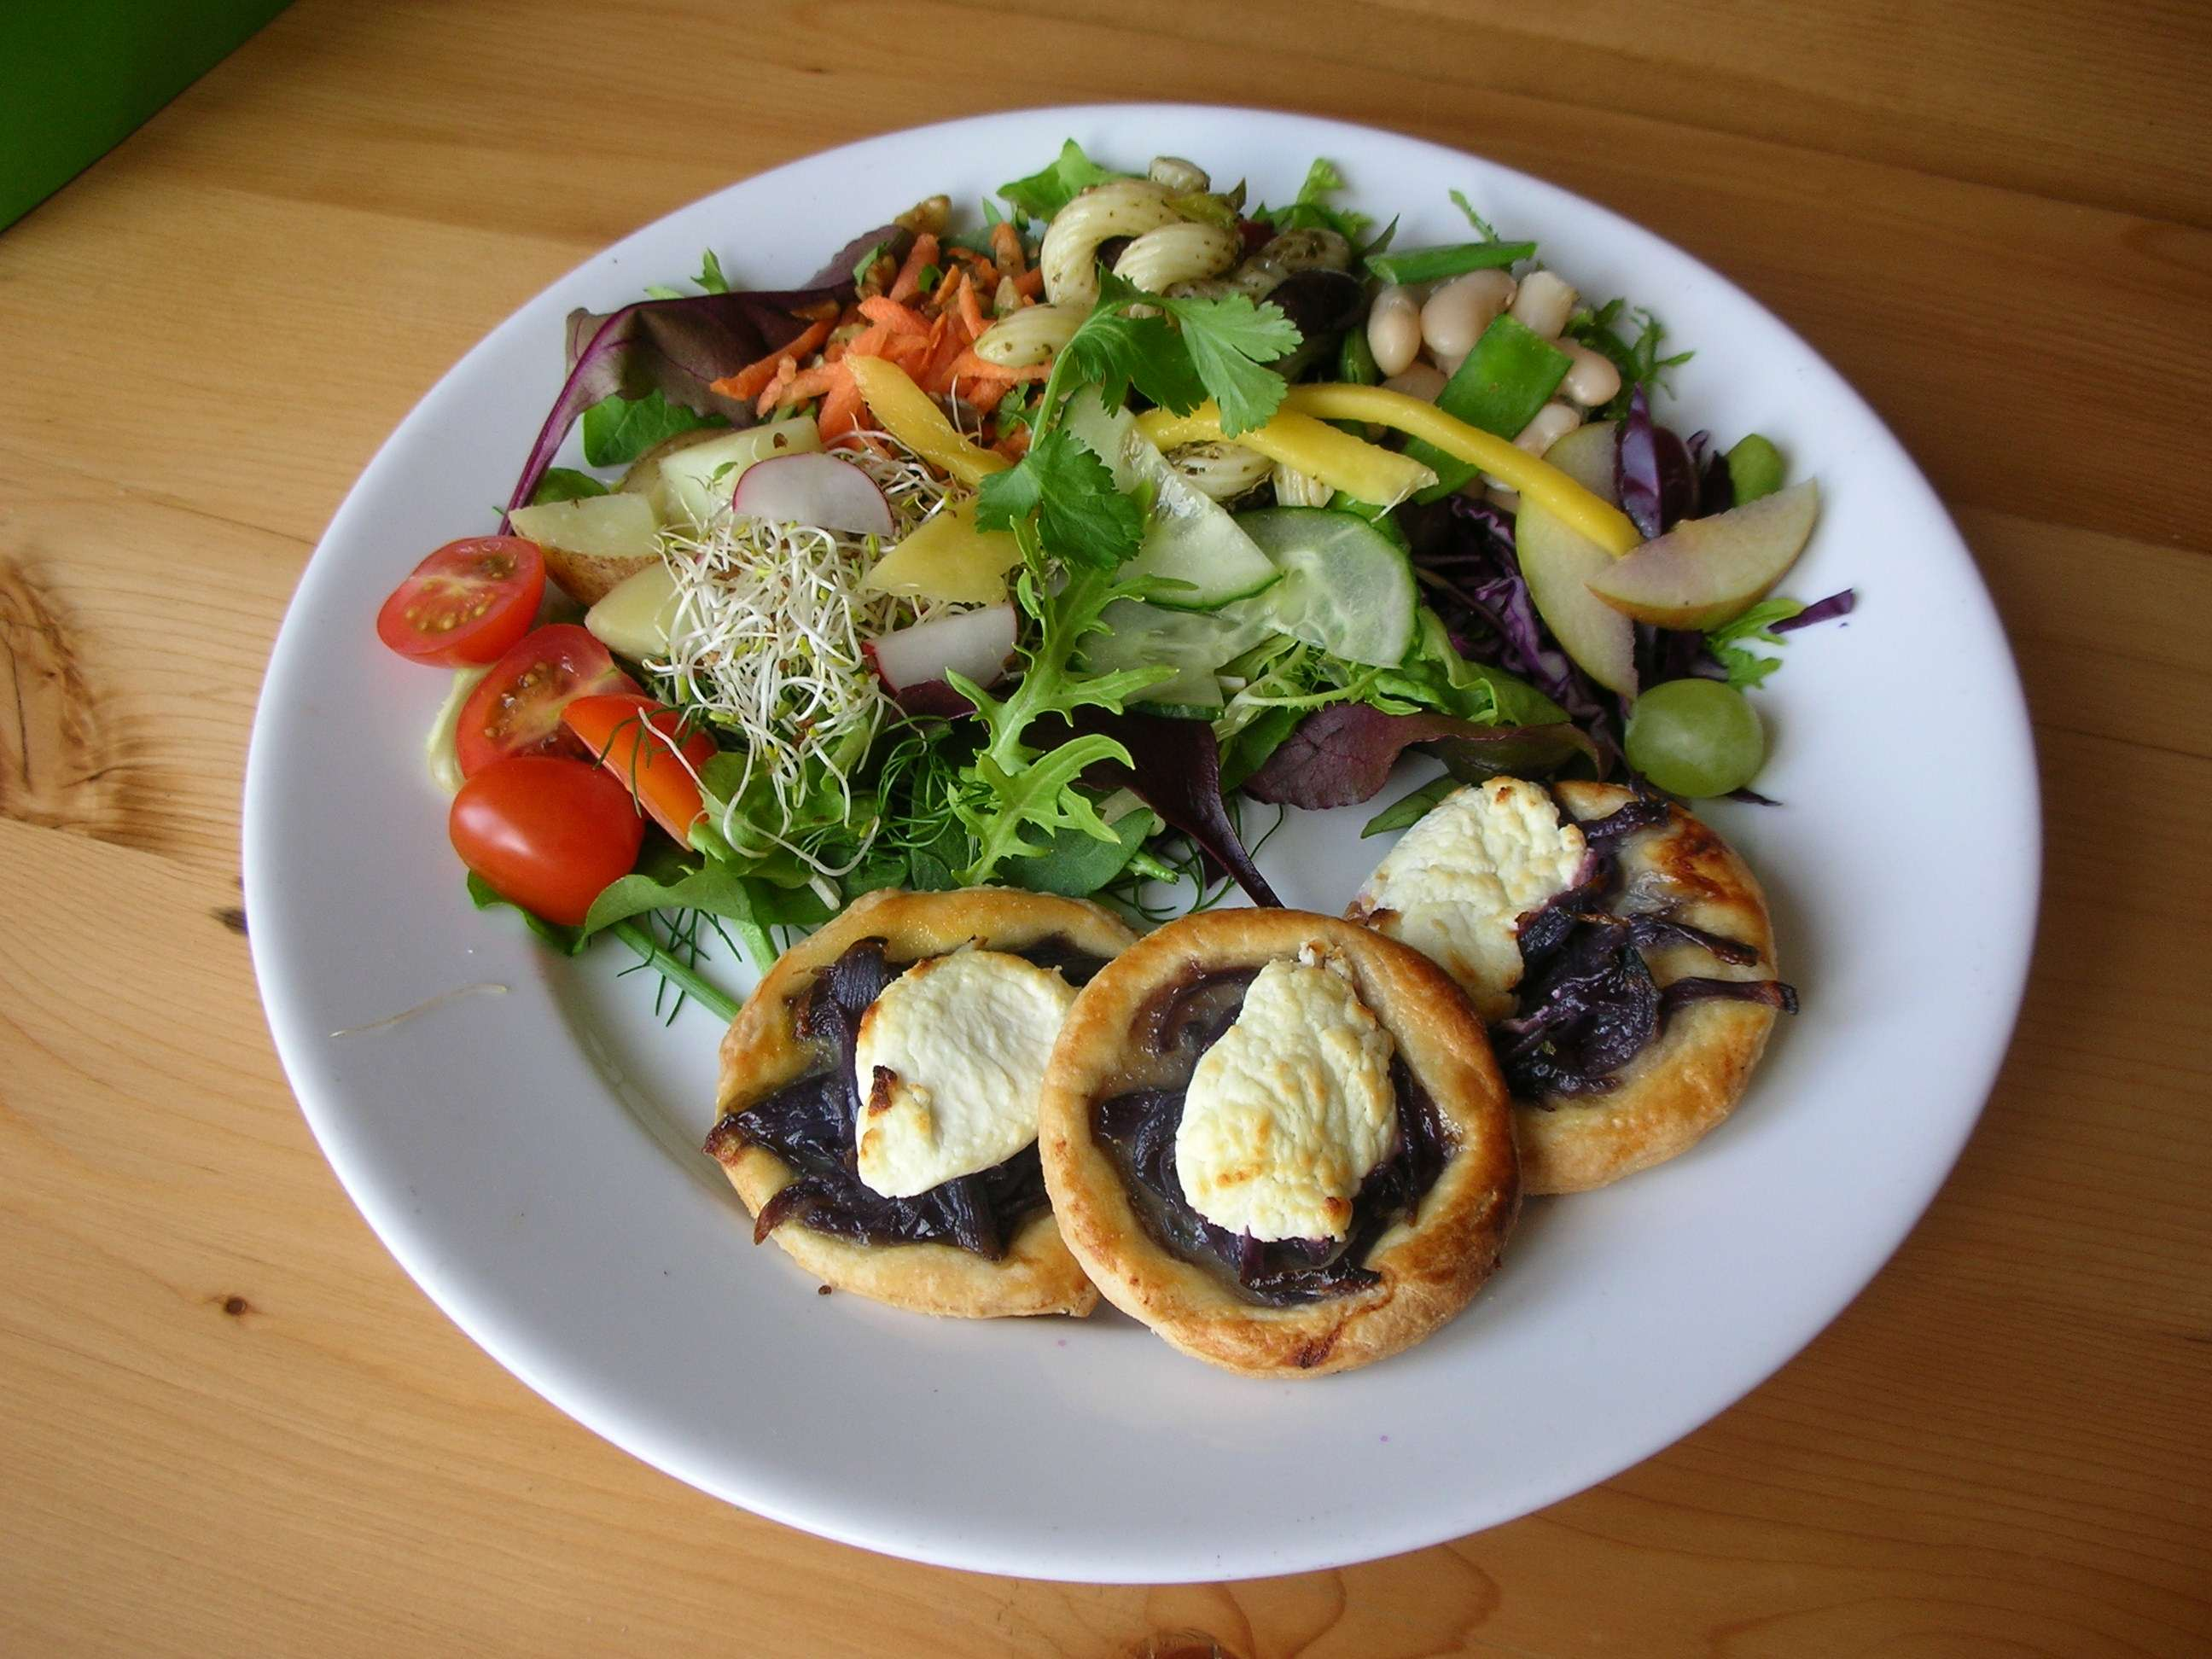 Vegetarian Tourists Destinations, Tartlets vegetarian dishes presentation